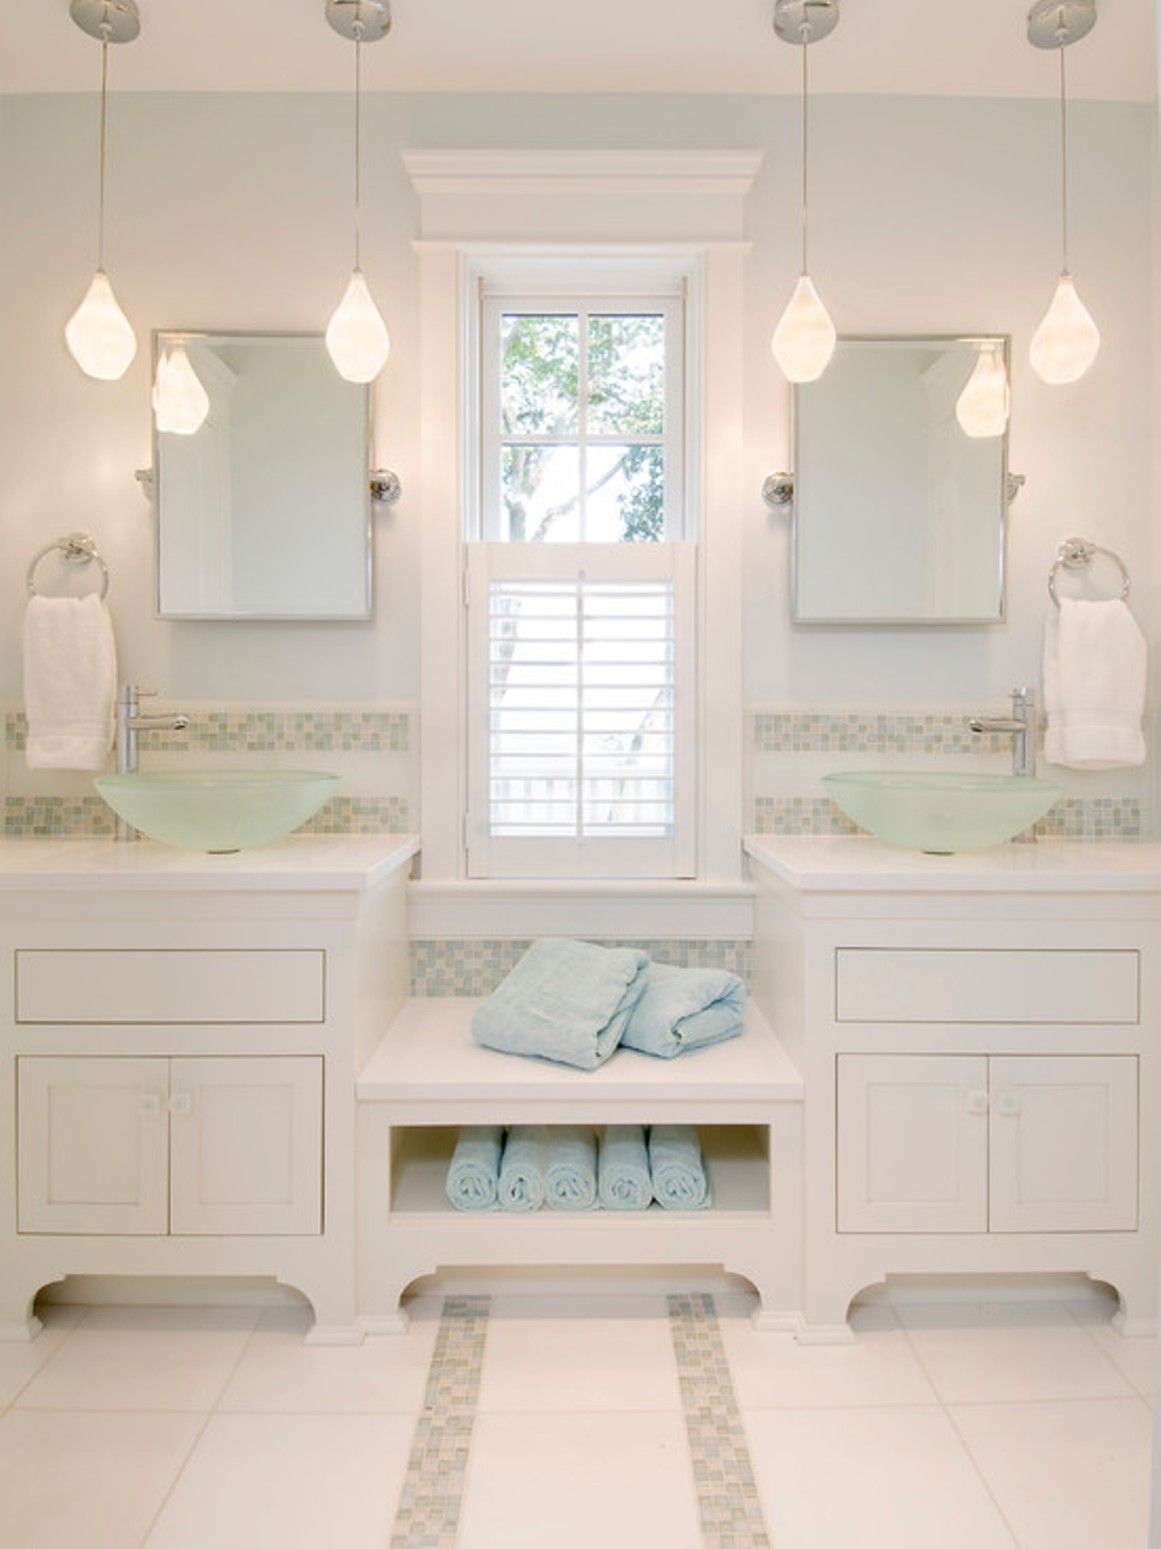 bathroom bathroom vanity lighting fixtures awesome beach house bathroom with white bathroom vanity lighting - Bathroom Vanity Lighting